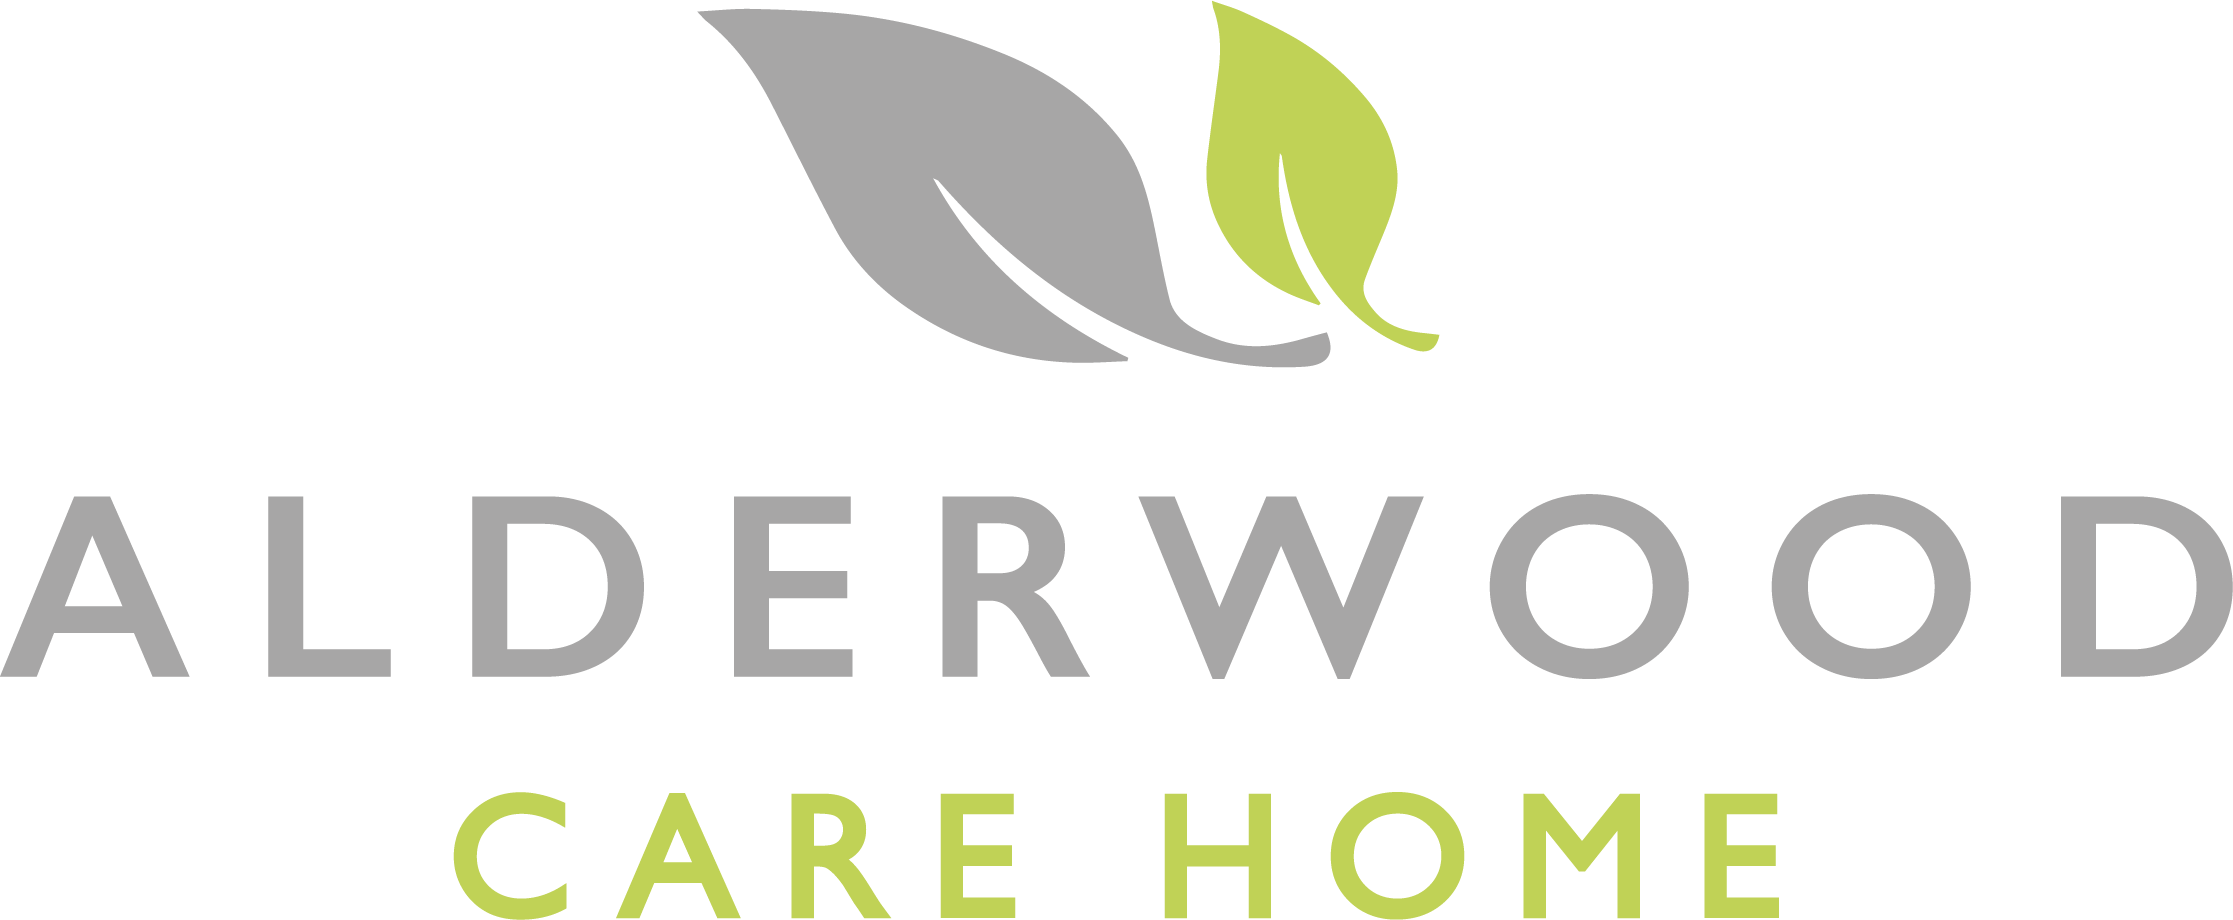 Alderwood Care Home